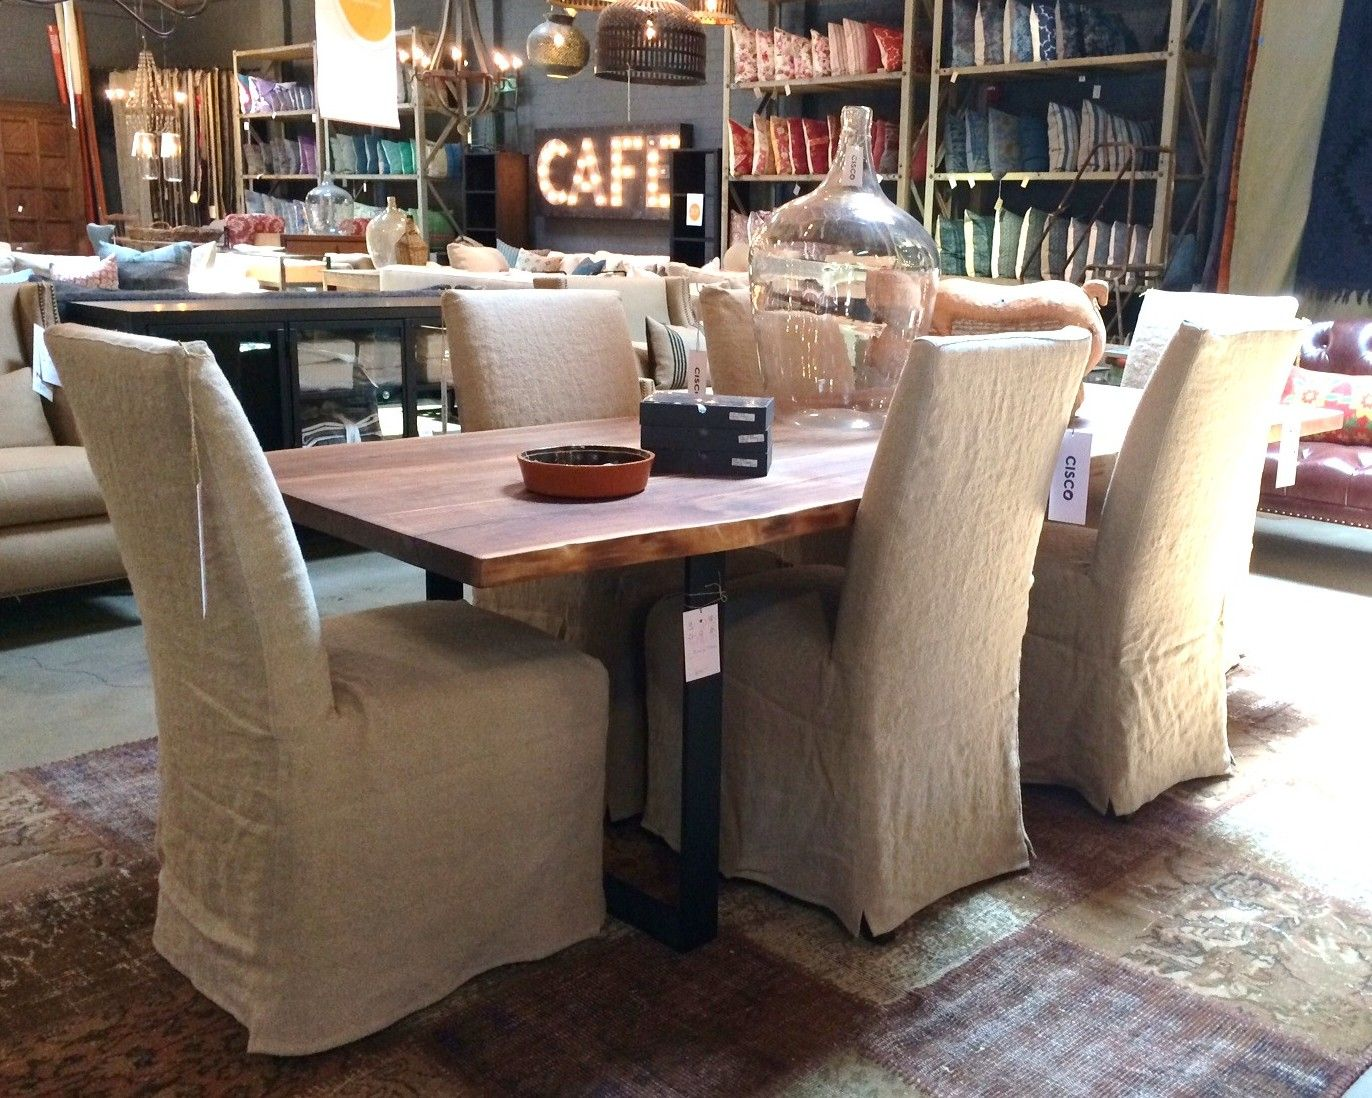 Ordinaire Acacia Table. Live Edge. One Of A Kind. Parson Chairs. Brevard Burlap.  Vintage Rug. Sustainable. Cisco Home. Pasadena, CA. 474 S. Arroyo Parkway.